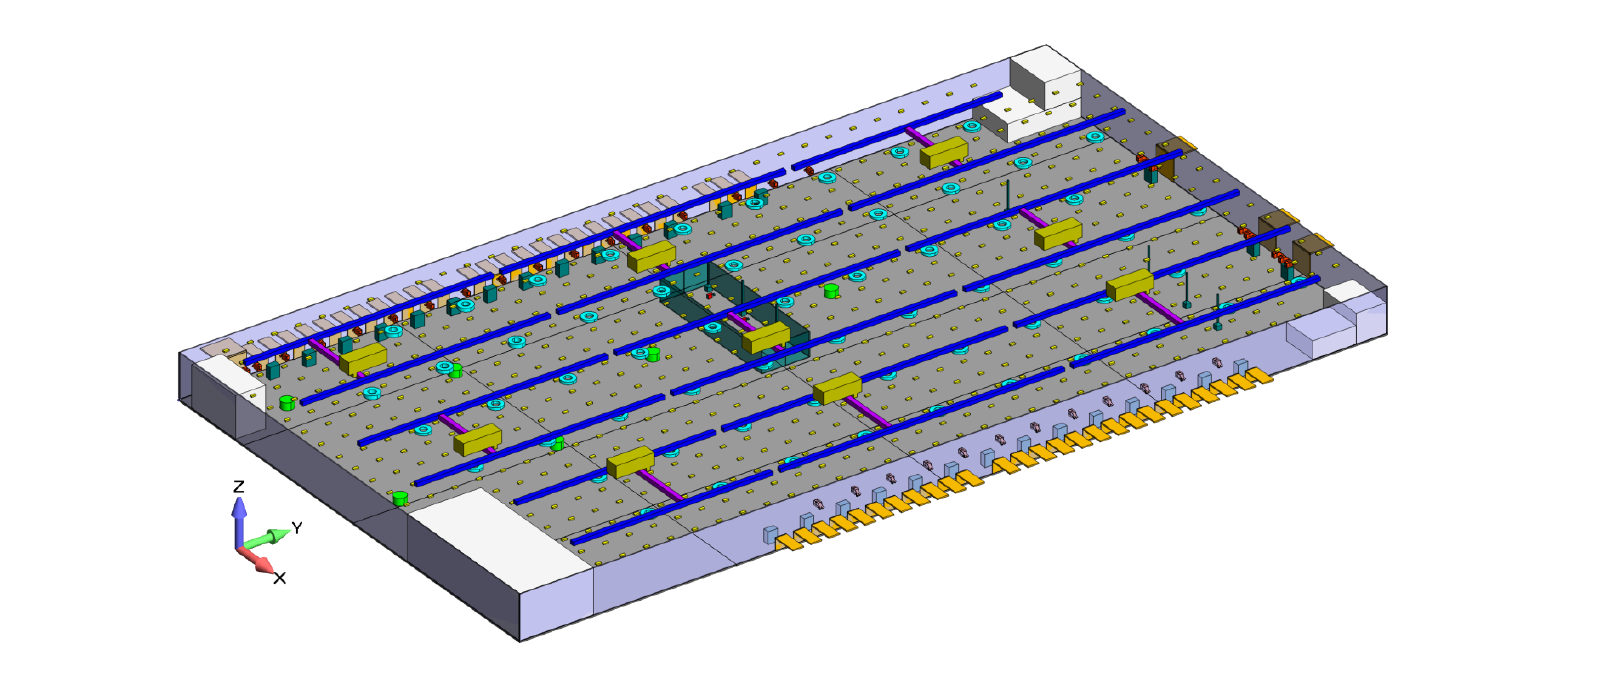 Figure 1: CAD geometry of one section of the building.